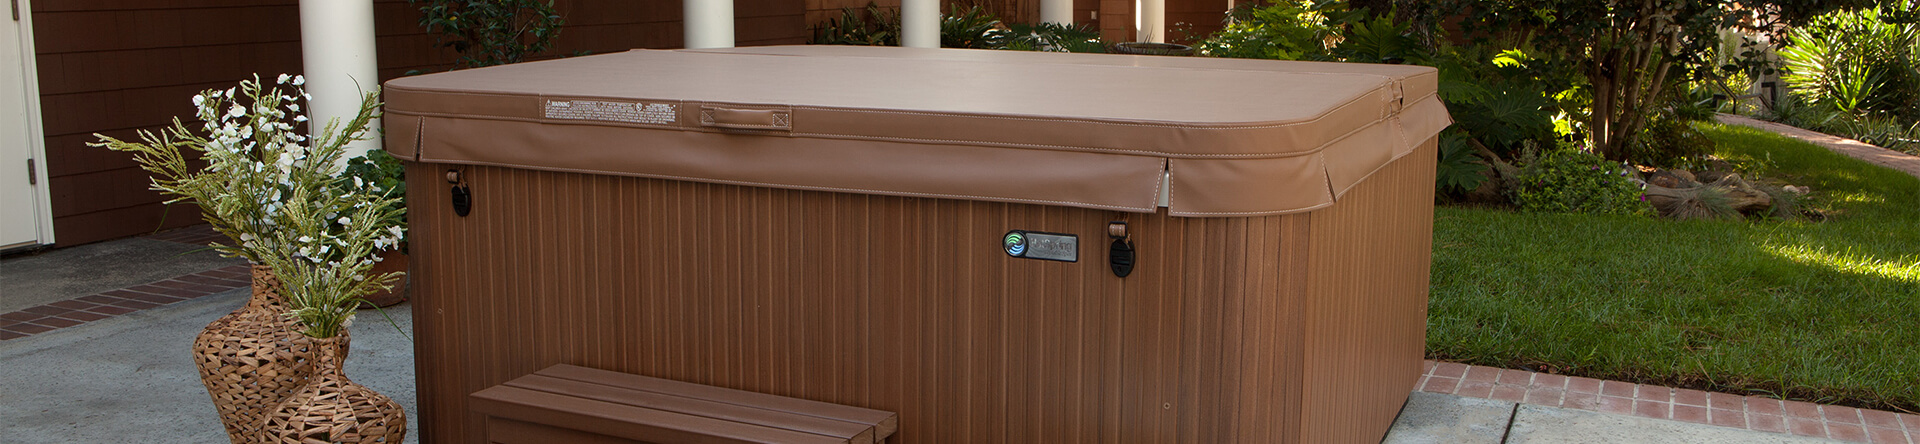 Extend the Life of Your Hot Tub Cover